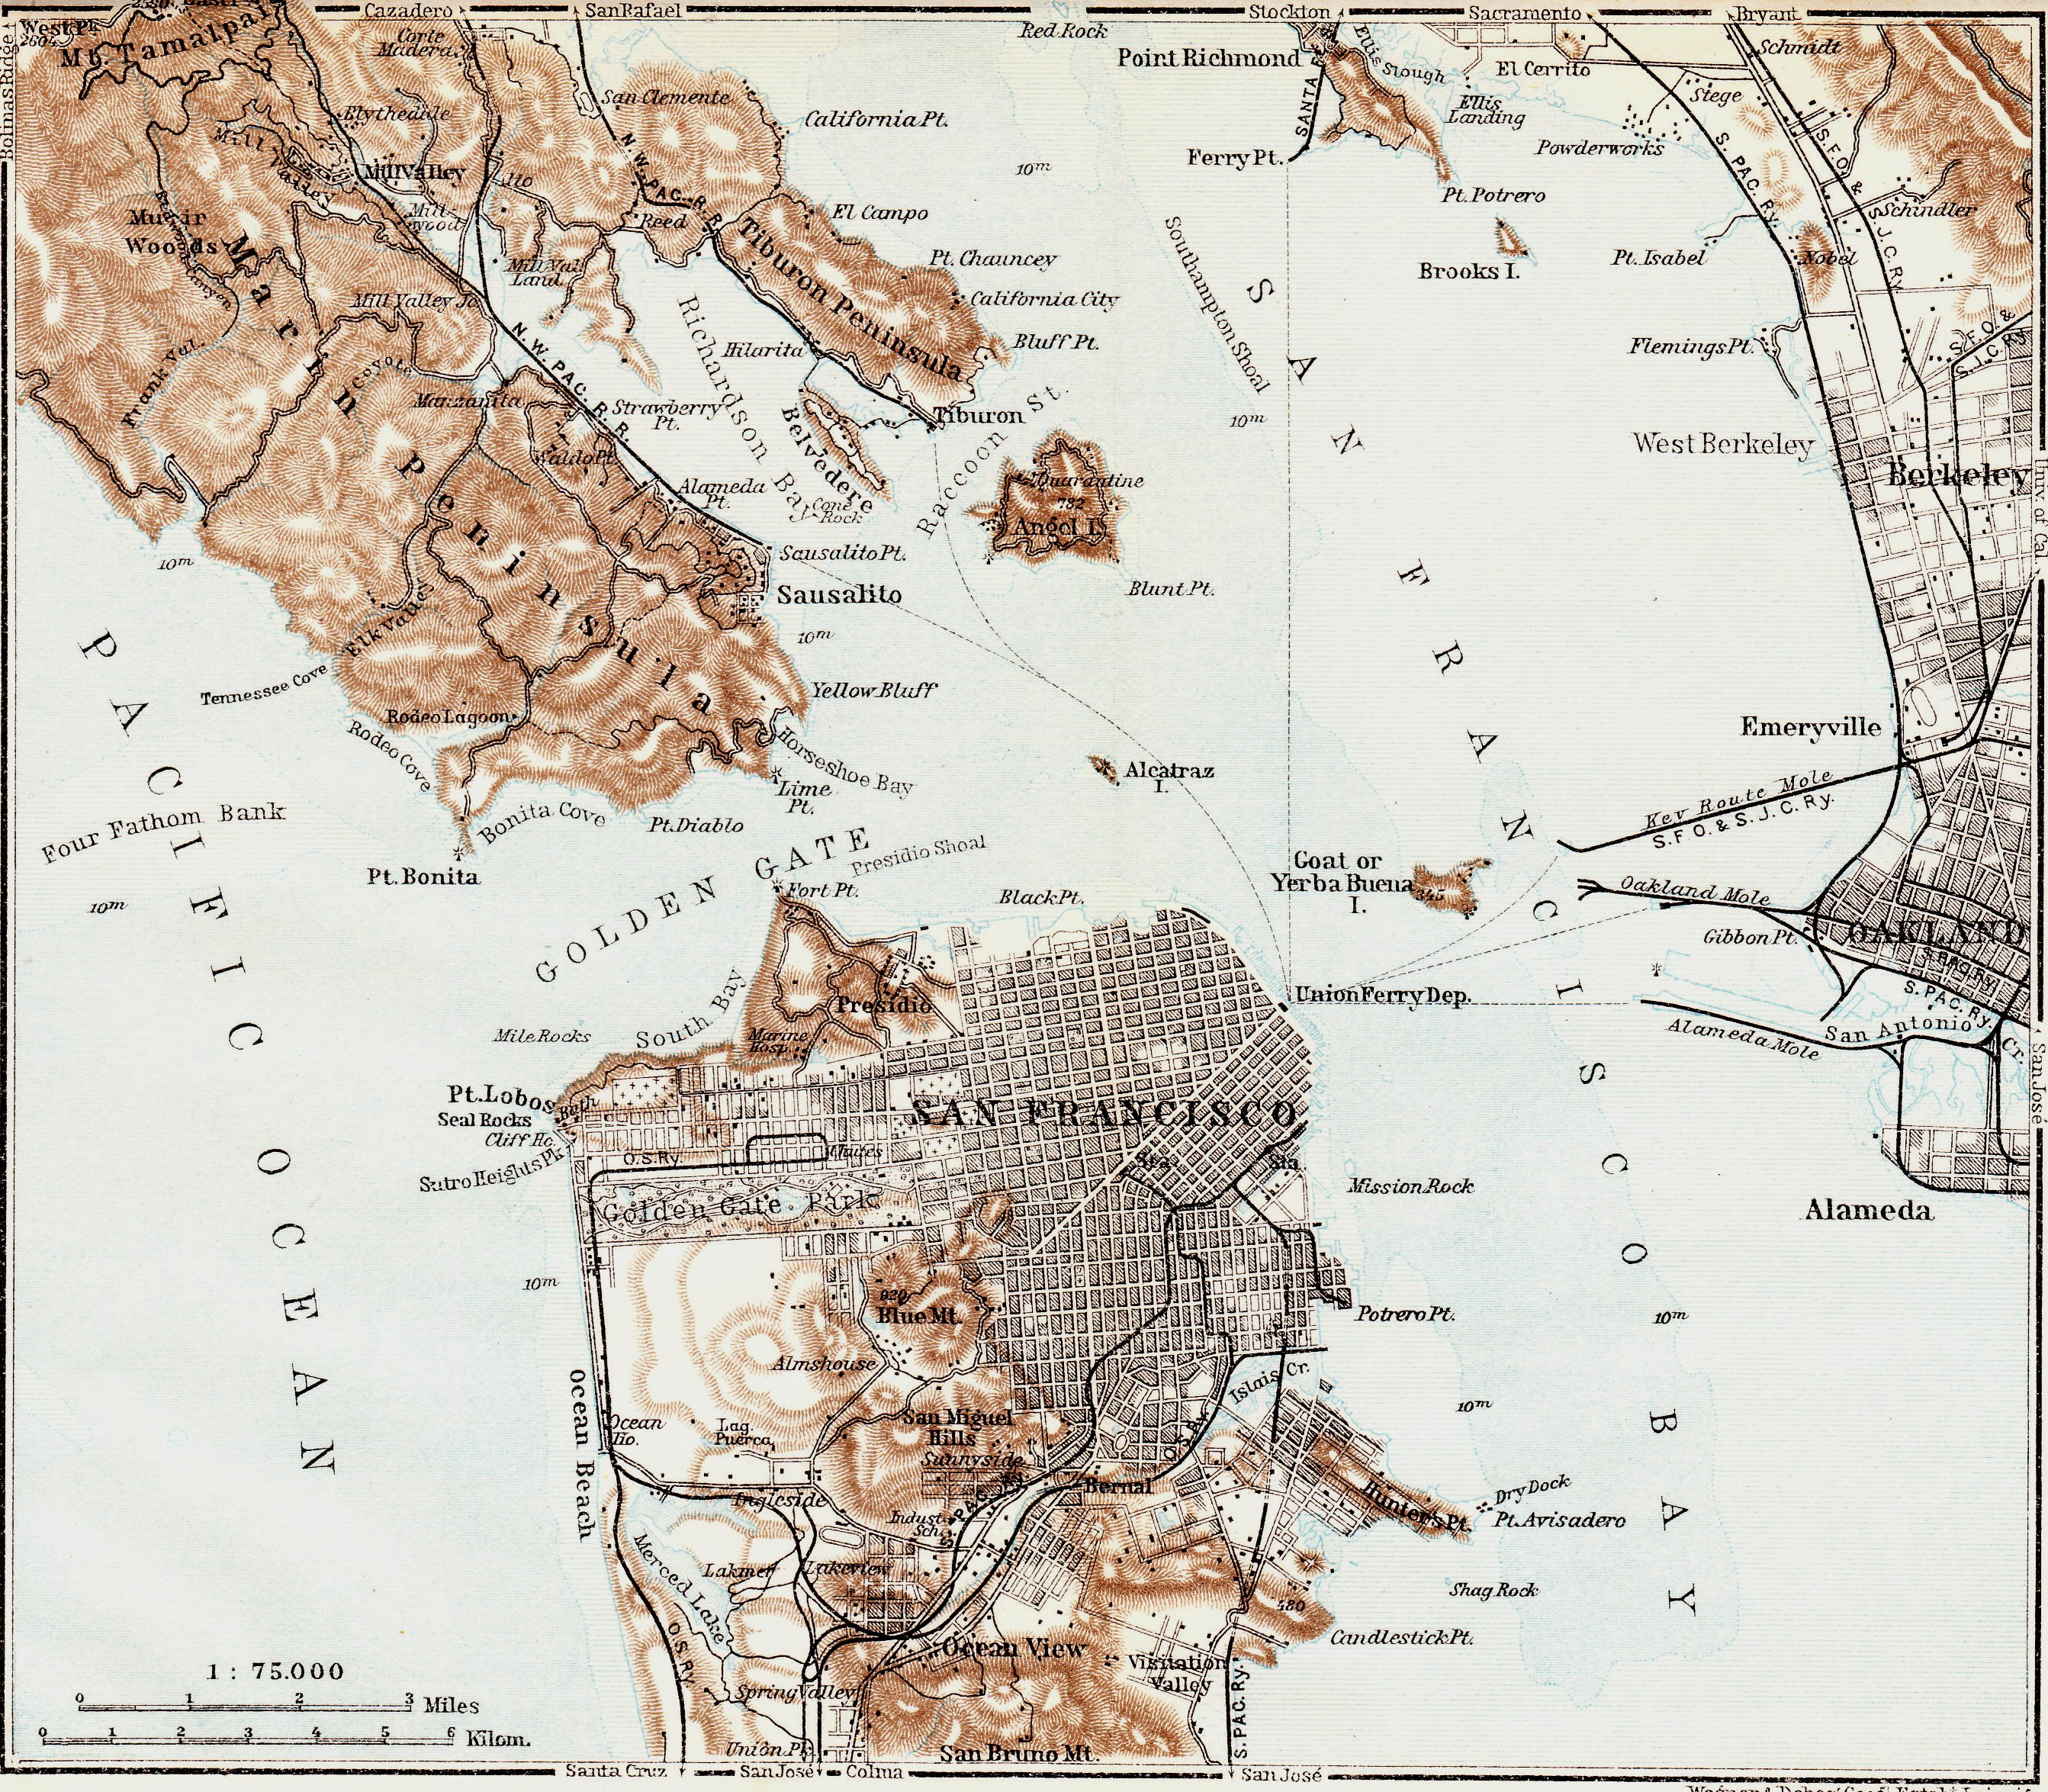 Behold this vintage 1909 map of the San Francisco Bay Area